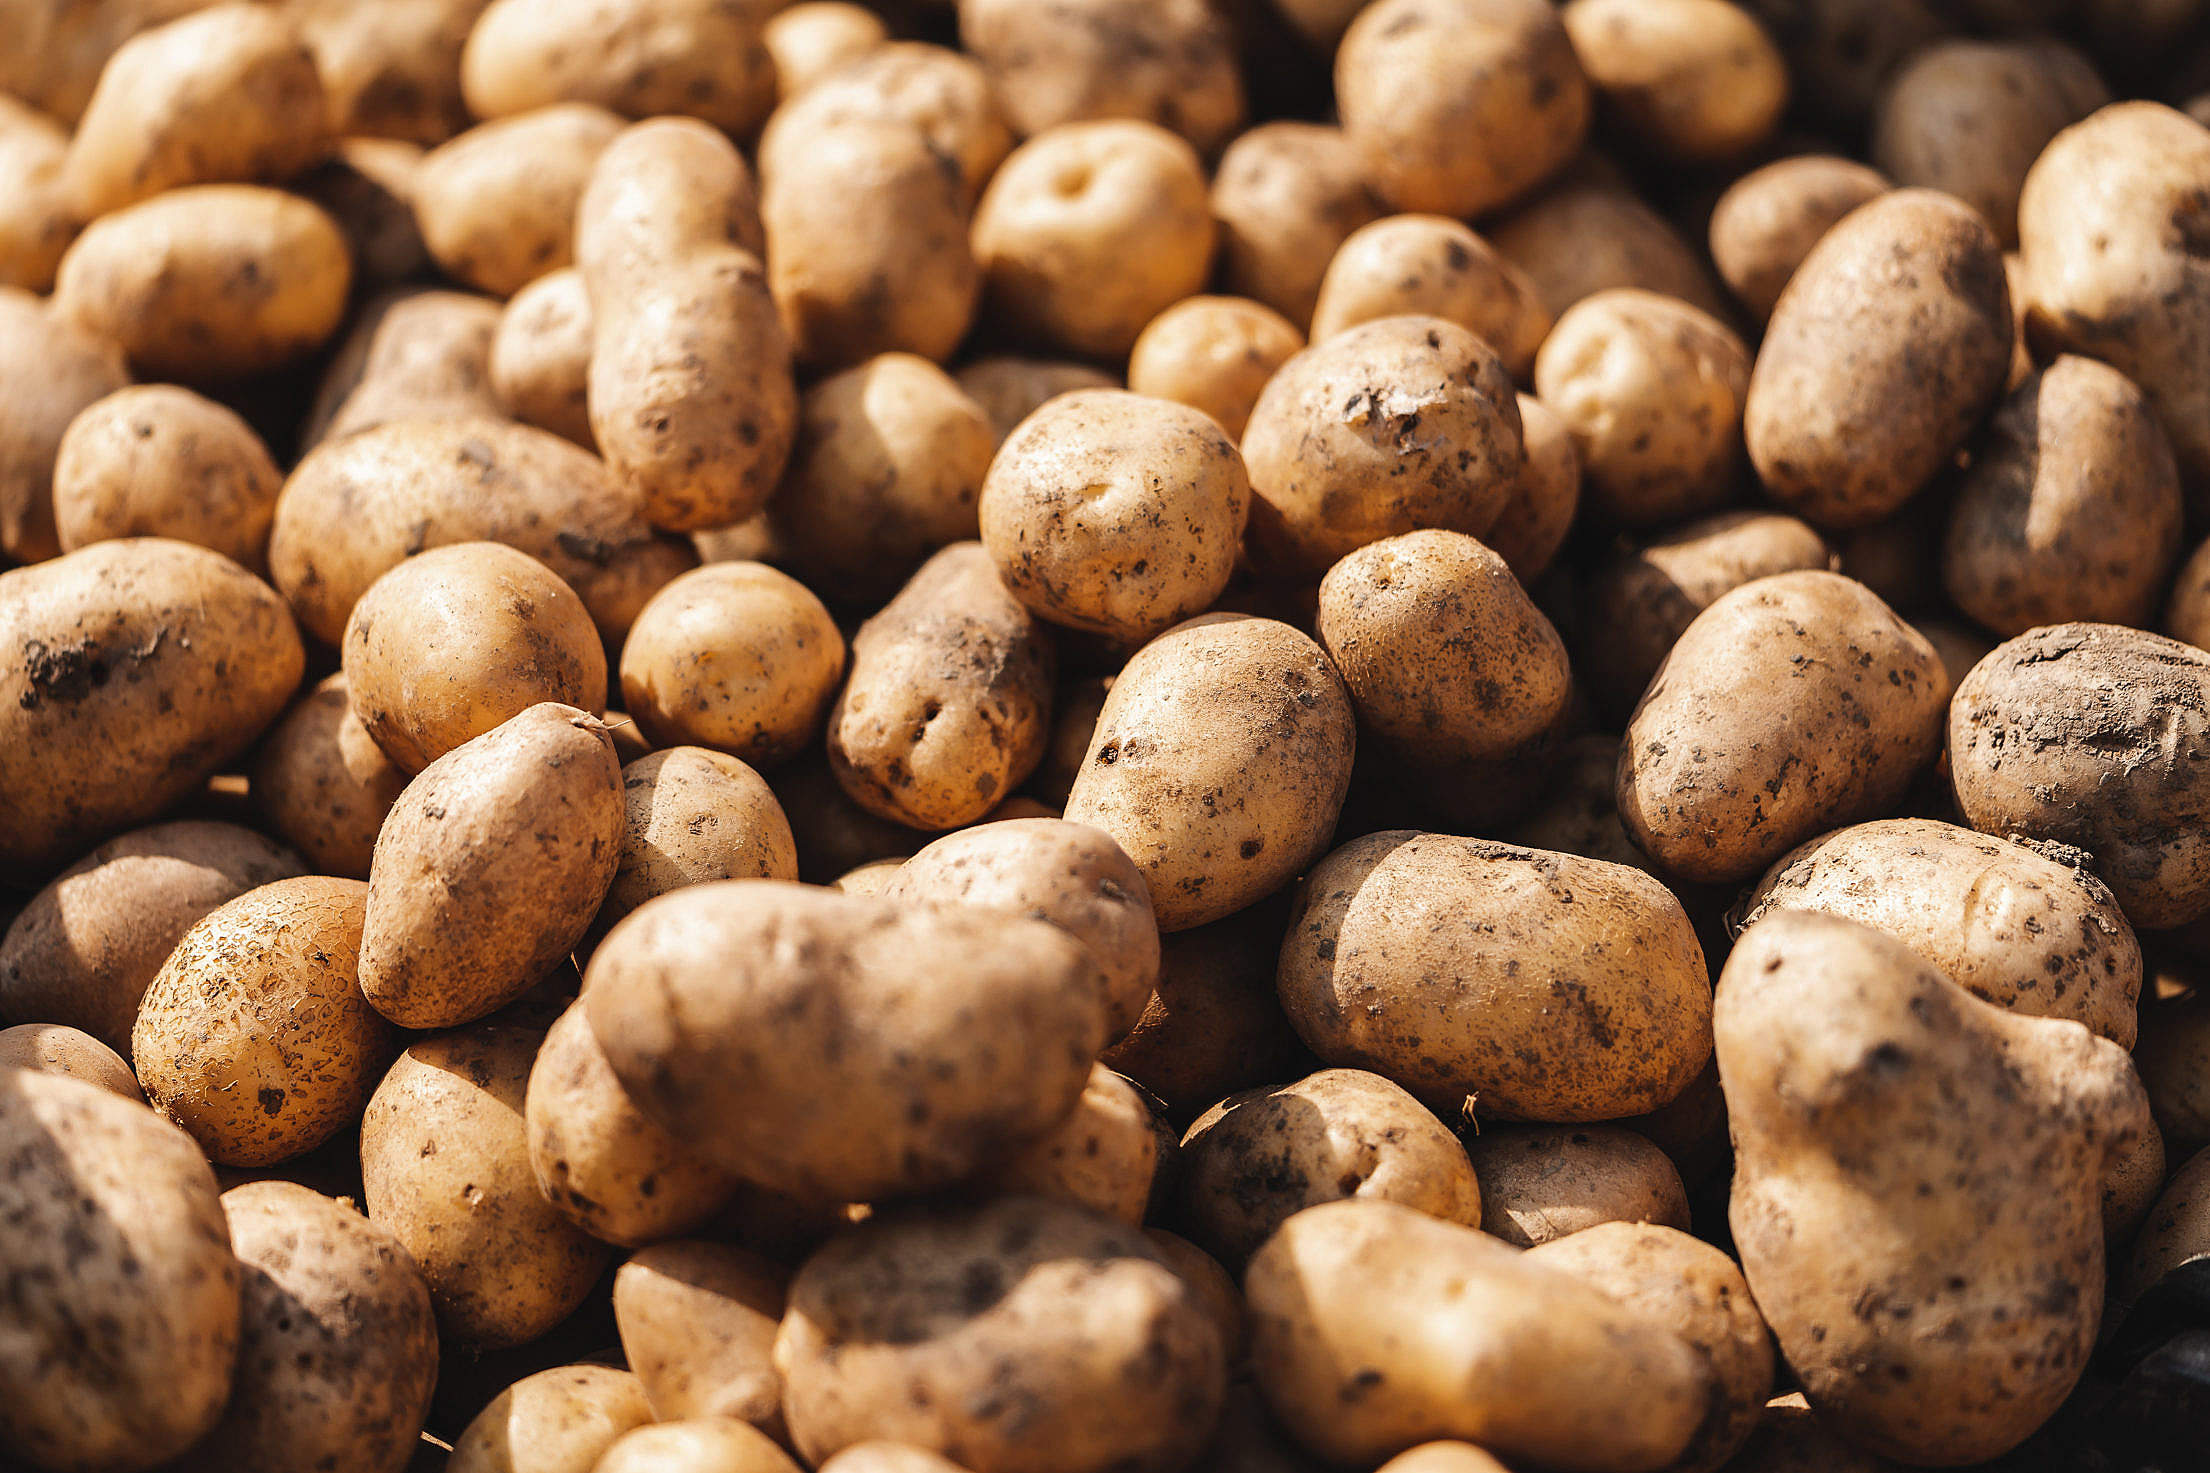 Potatoes Free Stock Photo